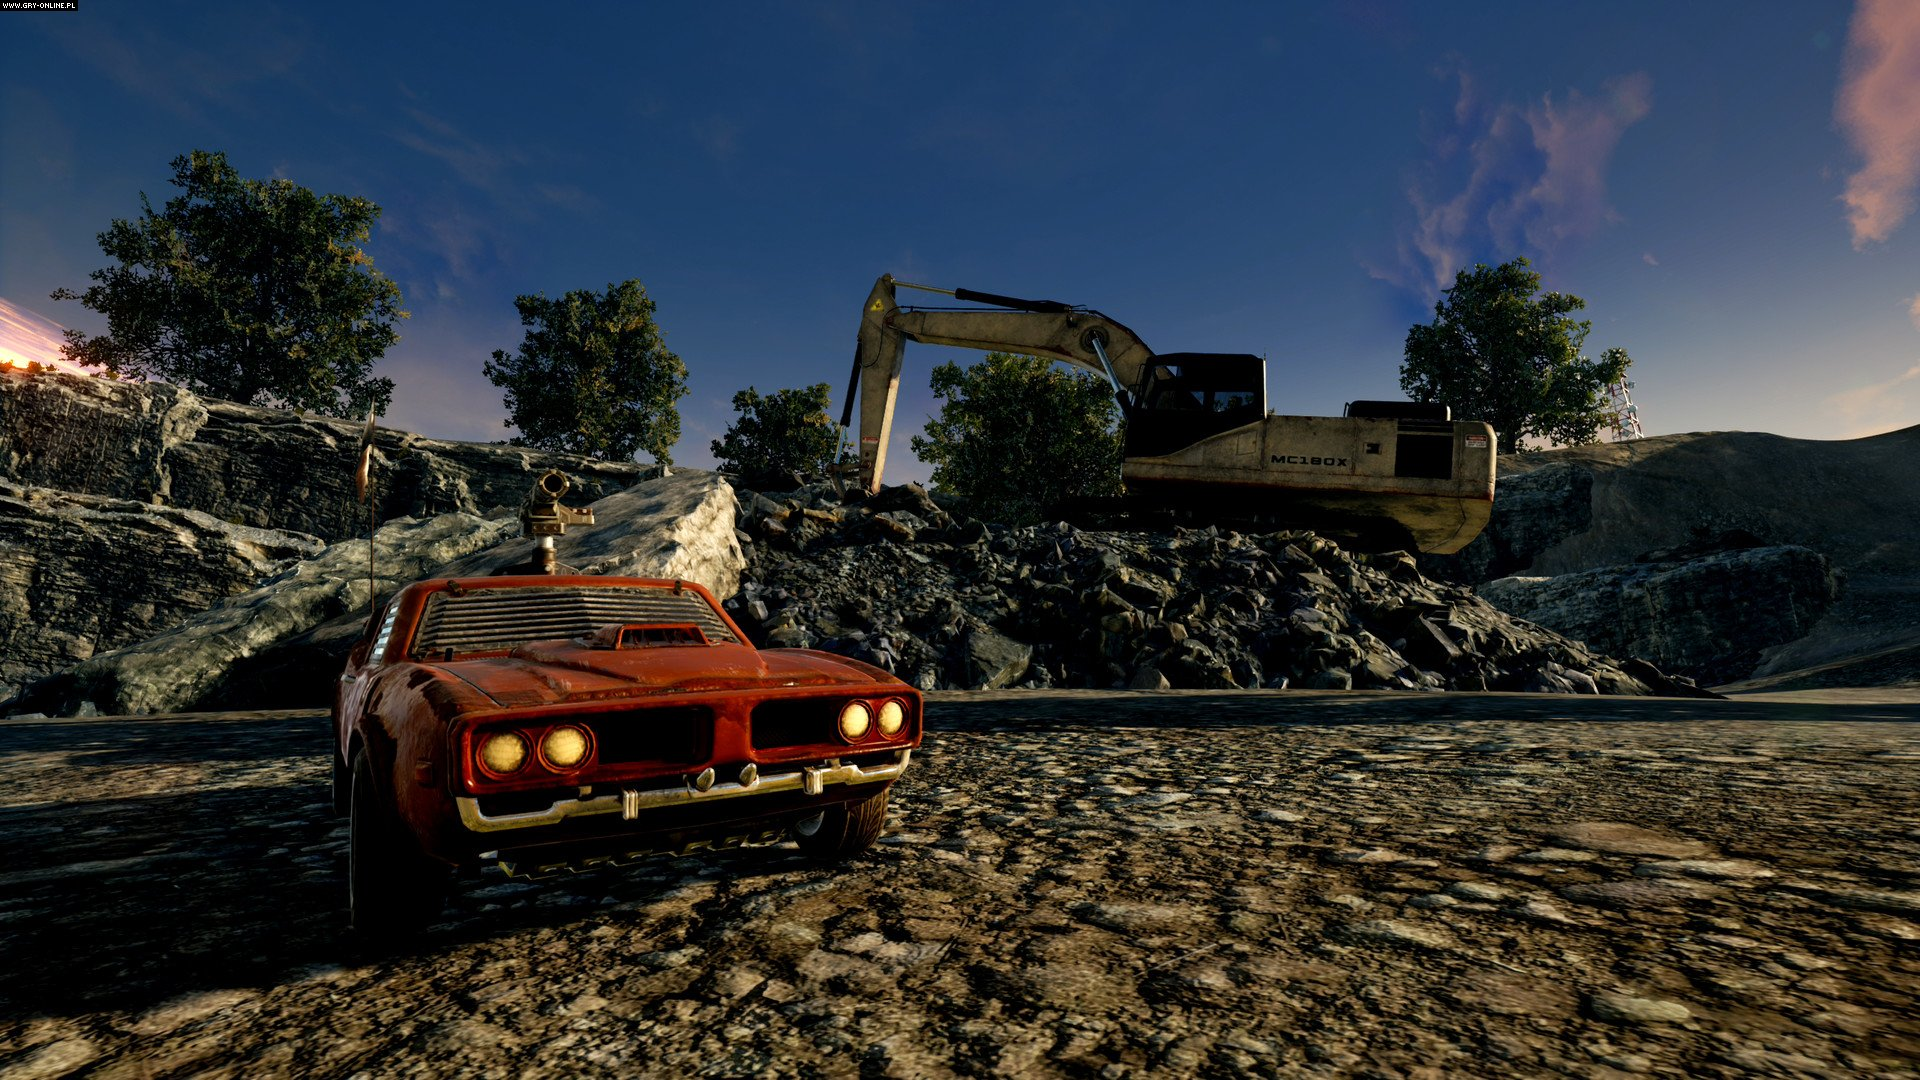 notmycar PC Gry Screen 8/12, NMC Studios, Skybound Games